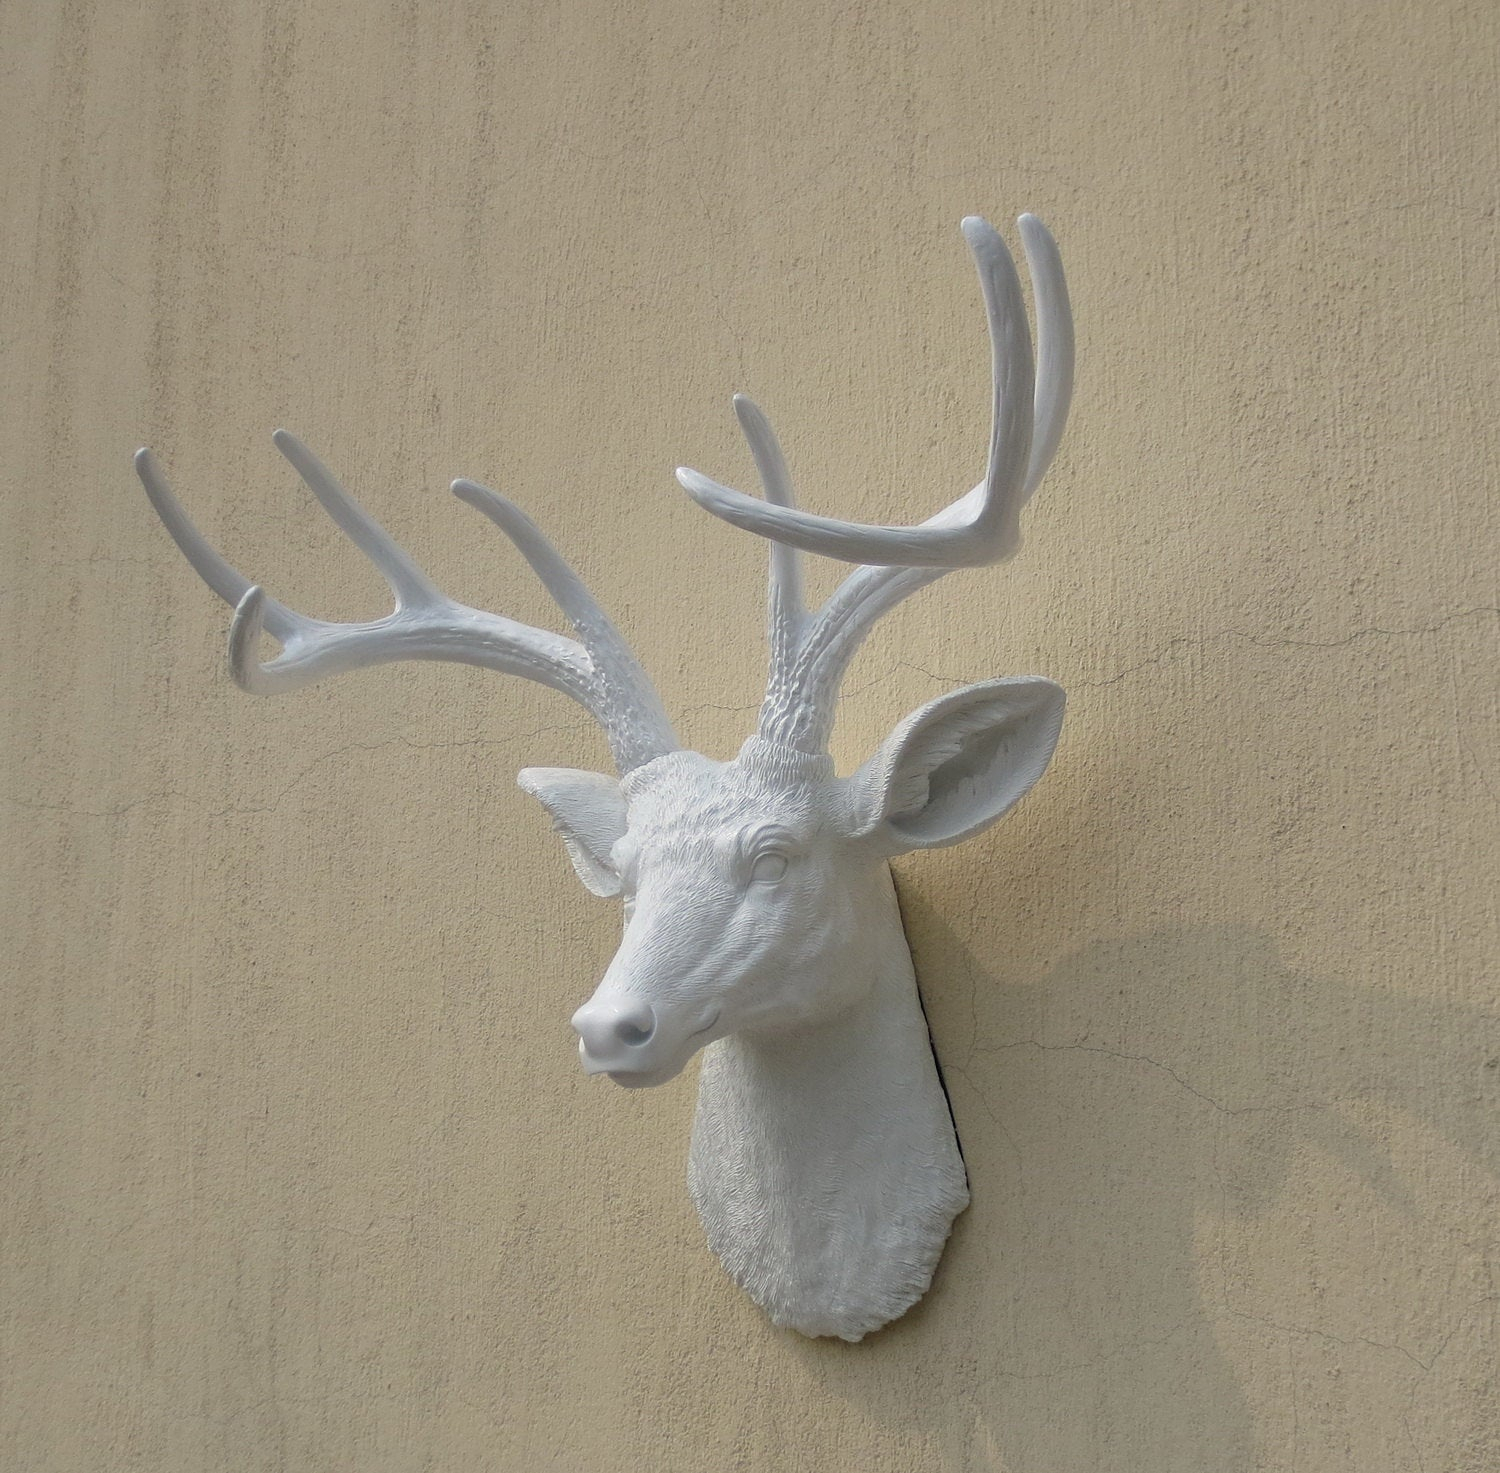 Most Recently Released Faux Animal Head Wall Decor – Pmpresssecretariat Within Large Deer Head Faux Taxidermy Wall Decor (View 14 of 20)